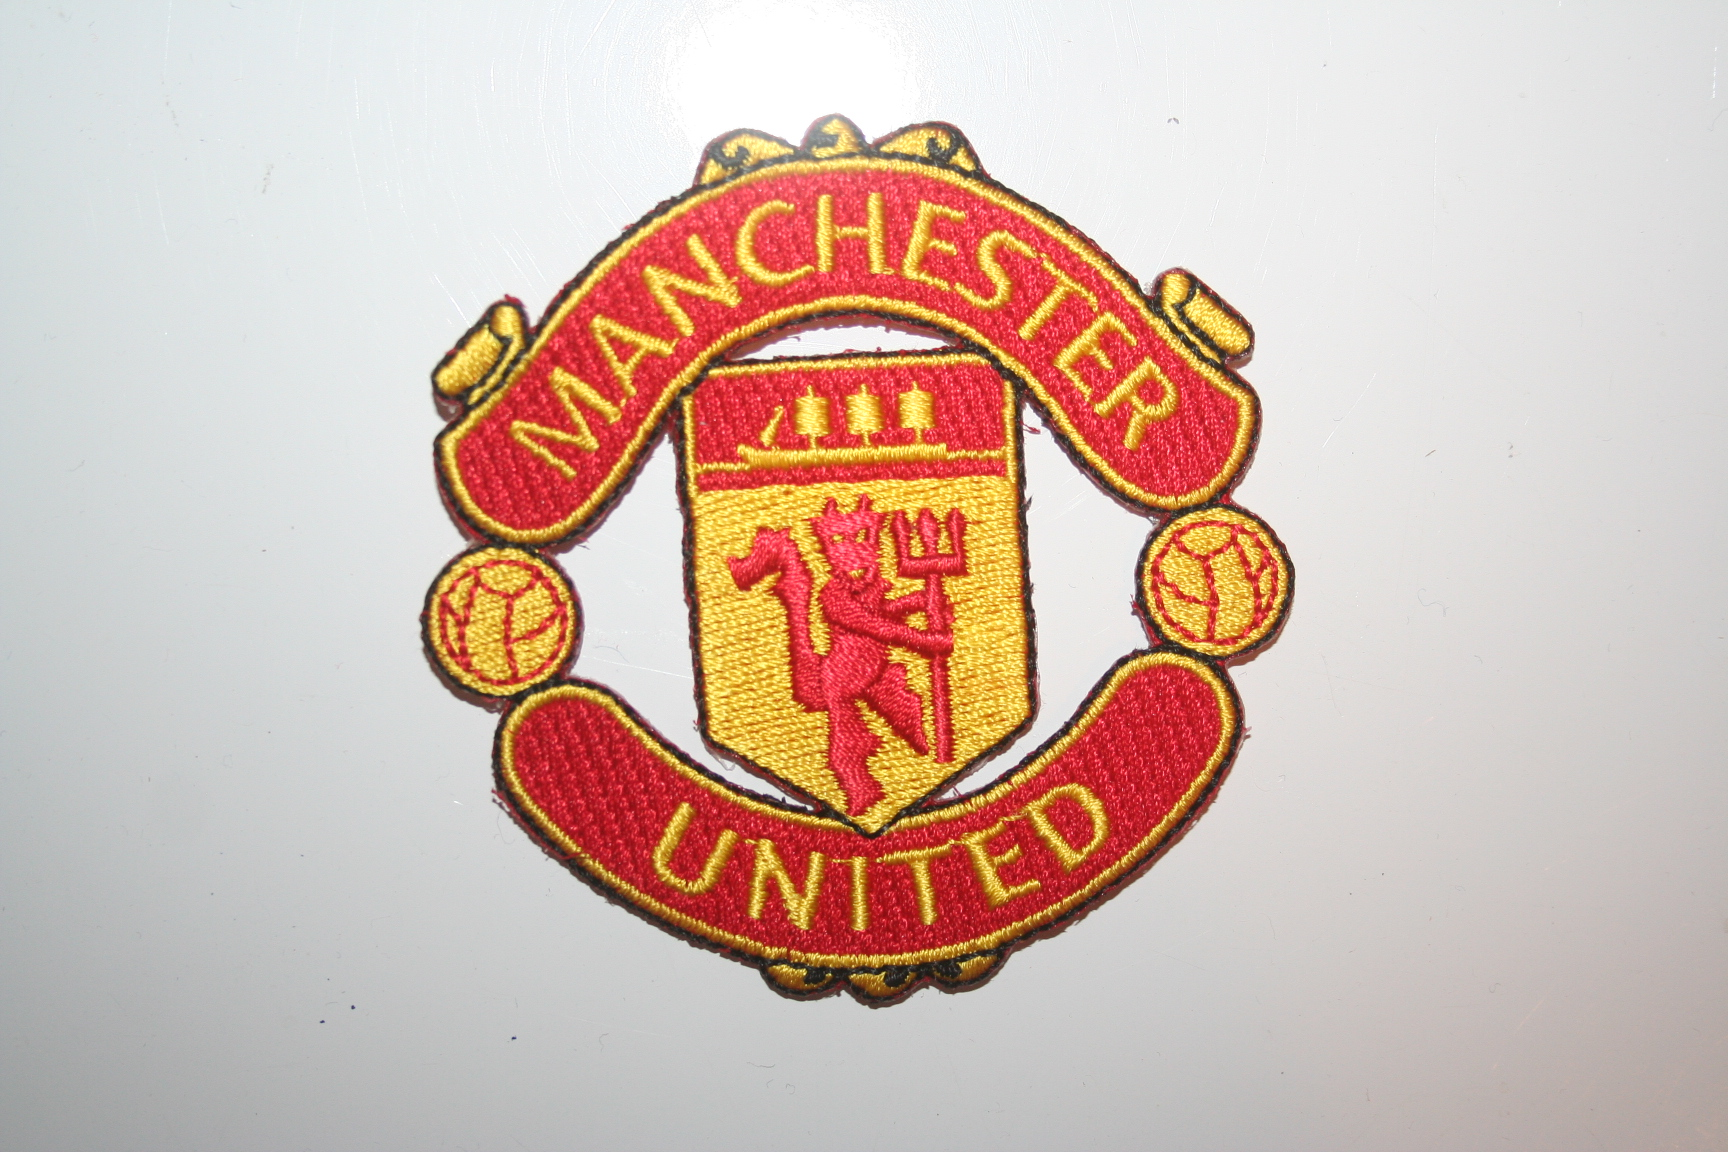 Manchester United Crest Badge Patch Fc Football Club Soccer English Premier League Merchandise Apparel